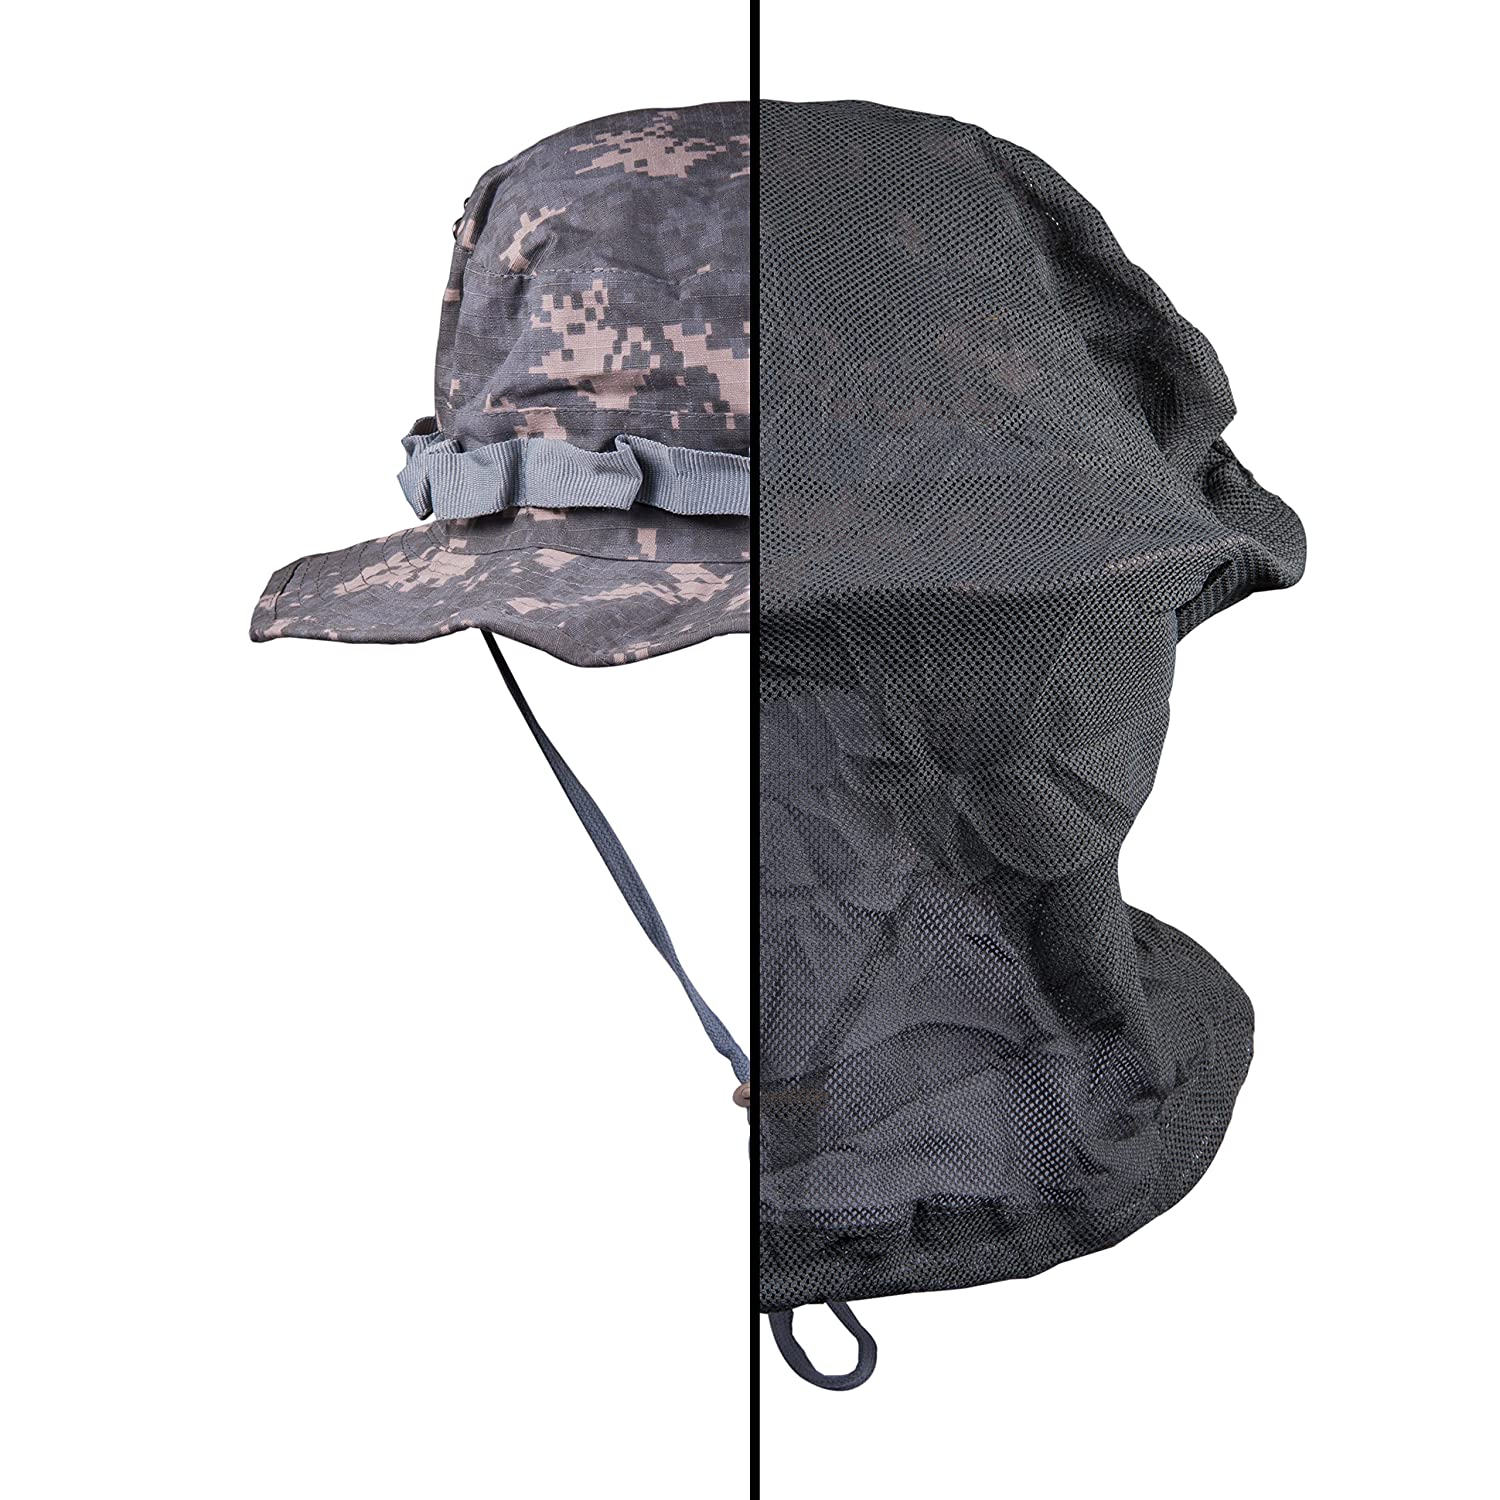 Mosquito Net Hat with Hidden Attached Mosquito Net、バグスプレー必要なくon your face to protect you when the Bugs Come Out by Tofl B06XR9N167 Universal Camouflage